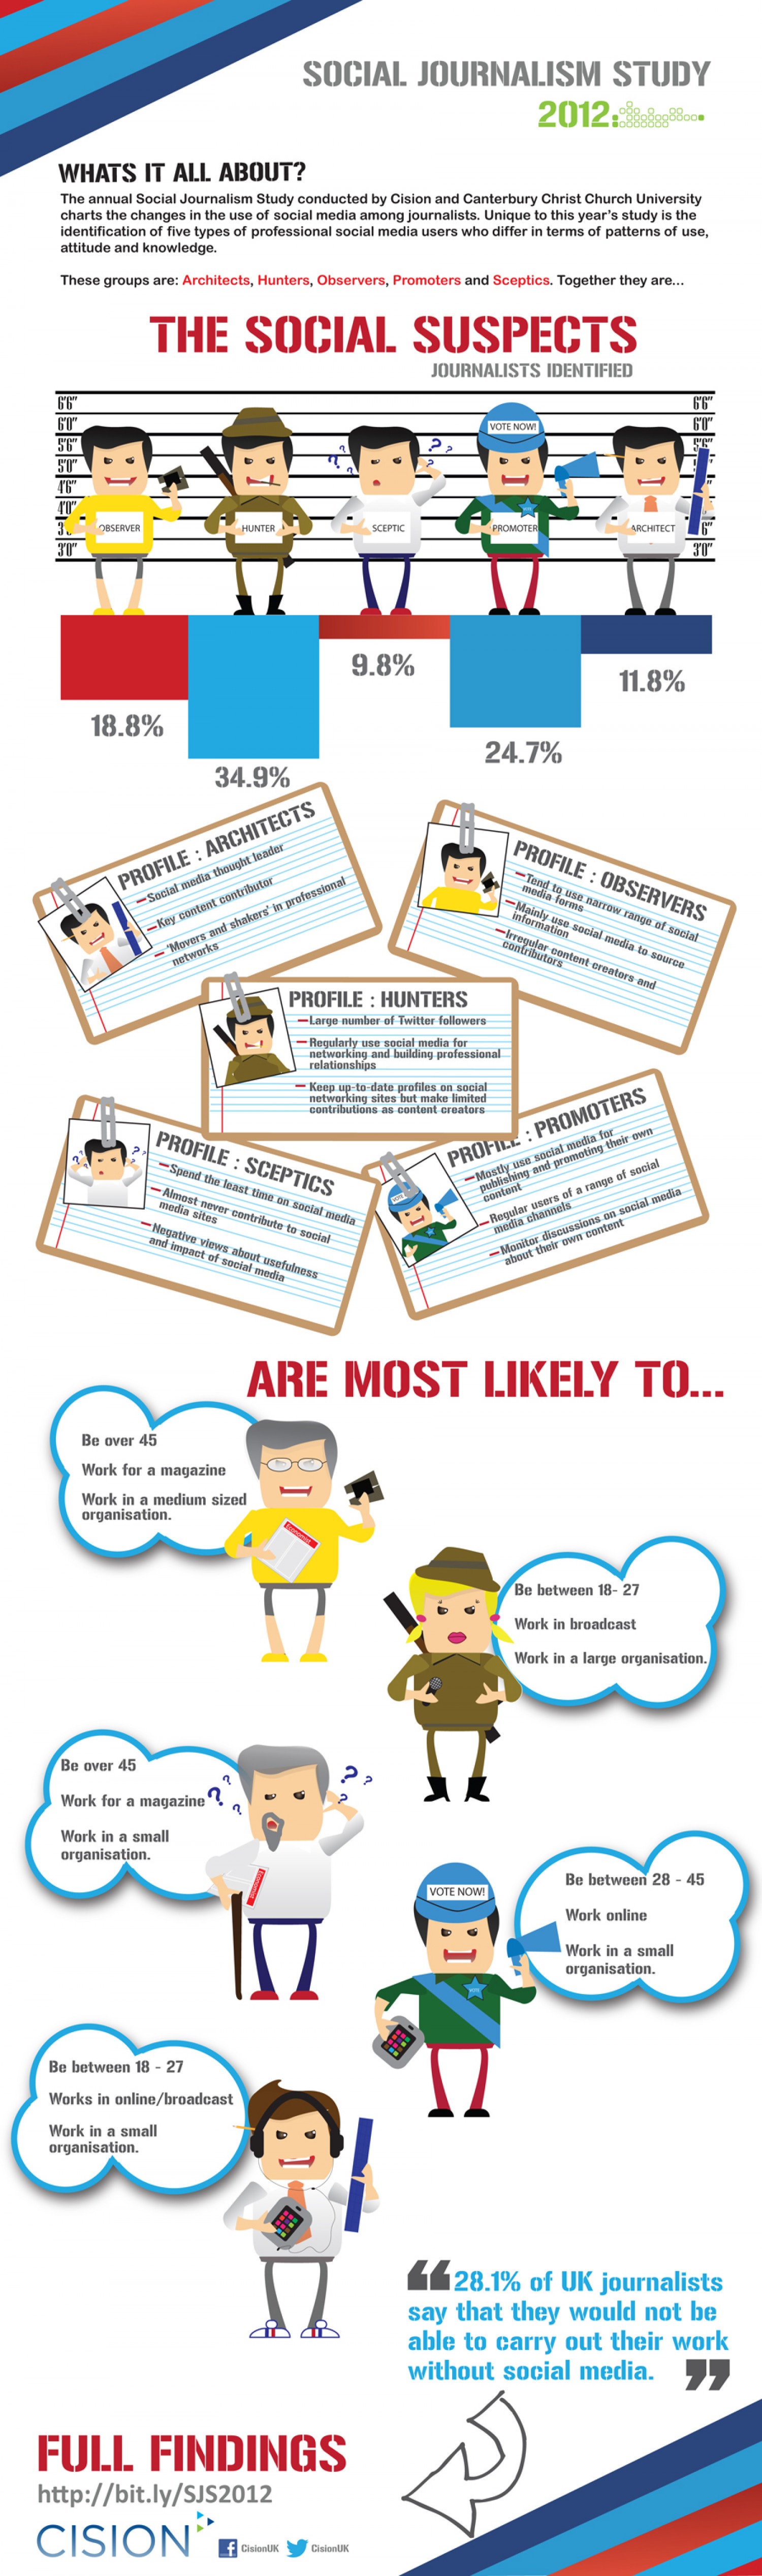 Social Journalism Study 2012 Infographic